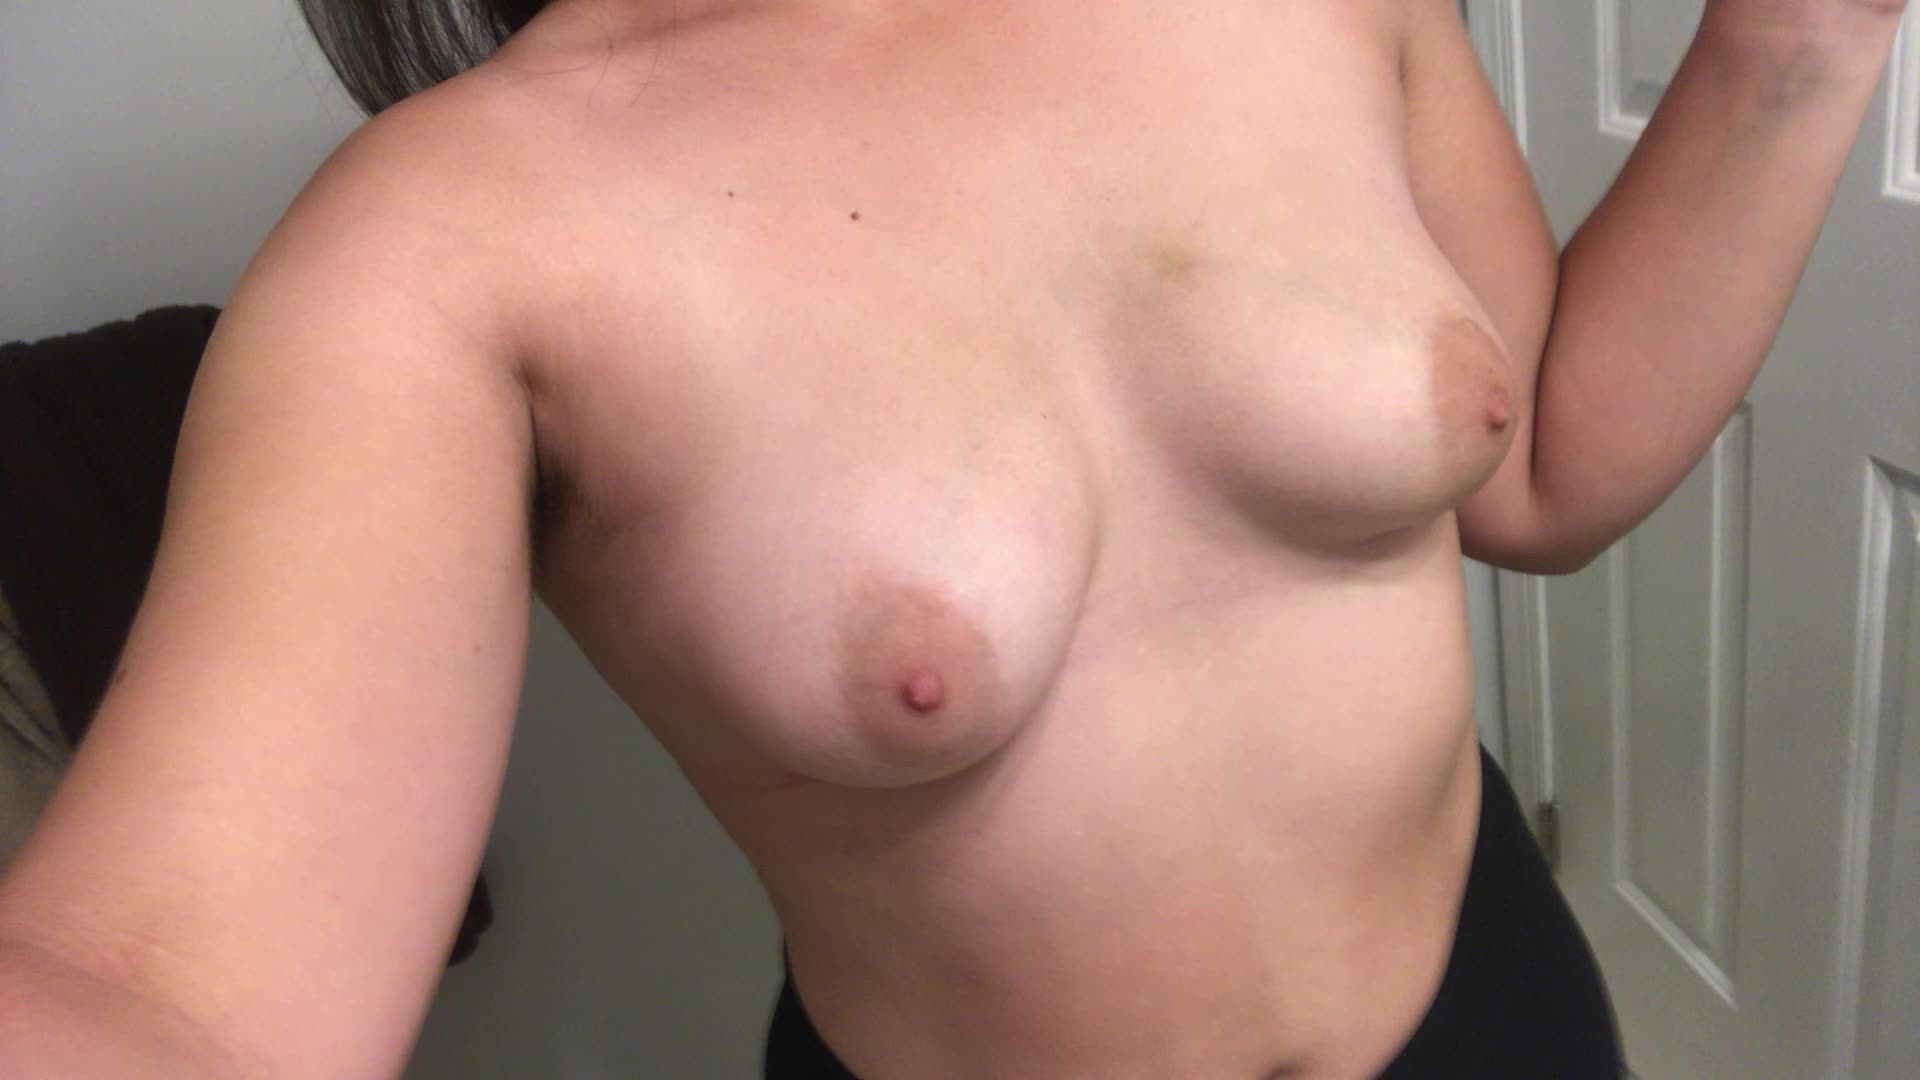 titty tuesday 🍒